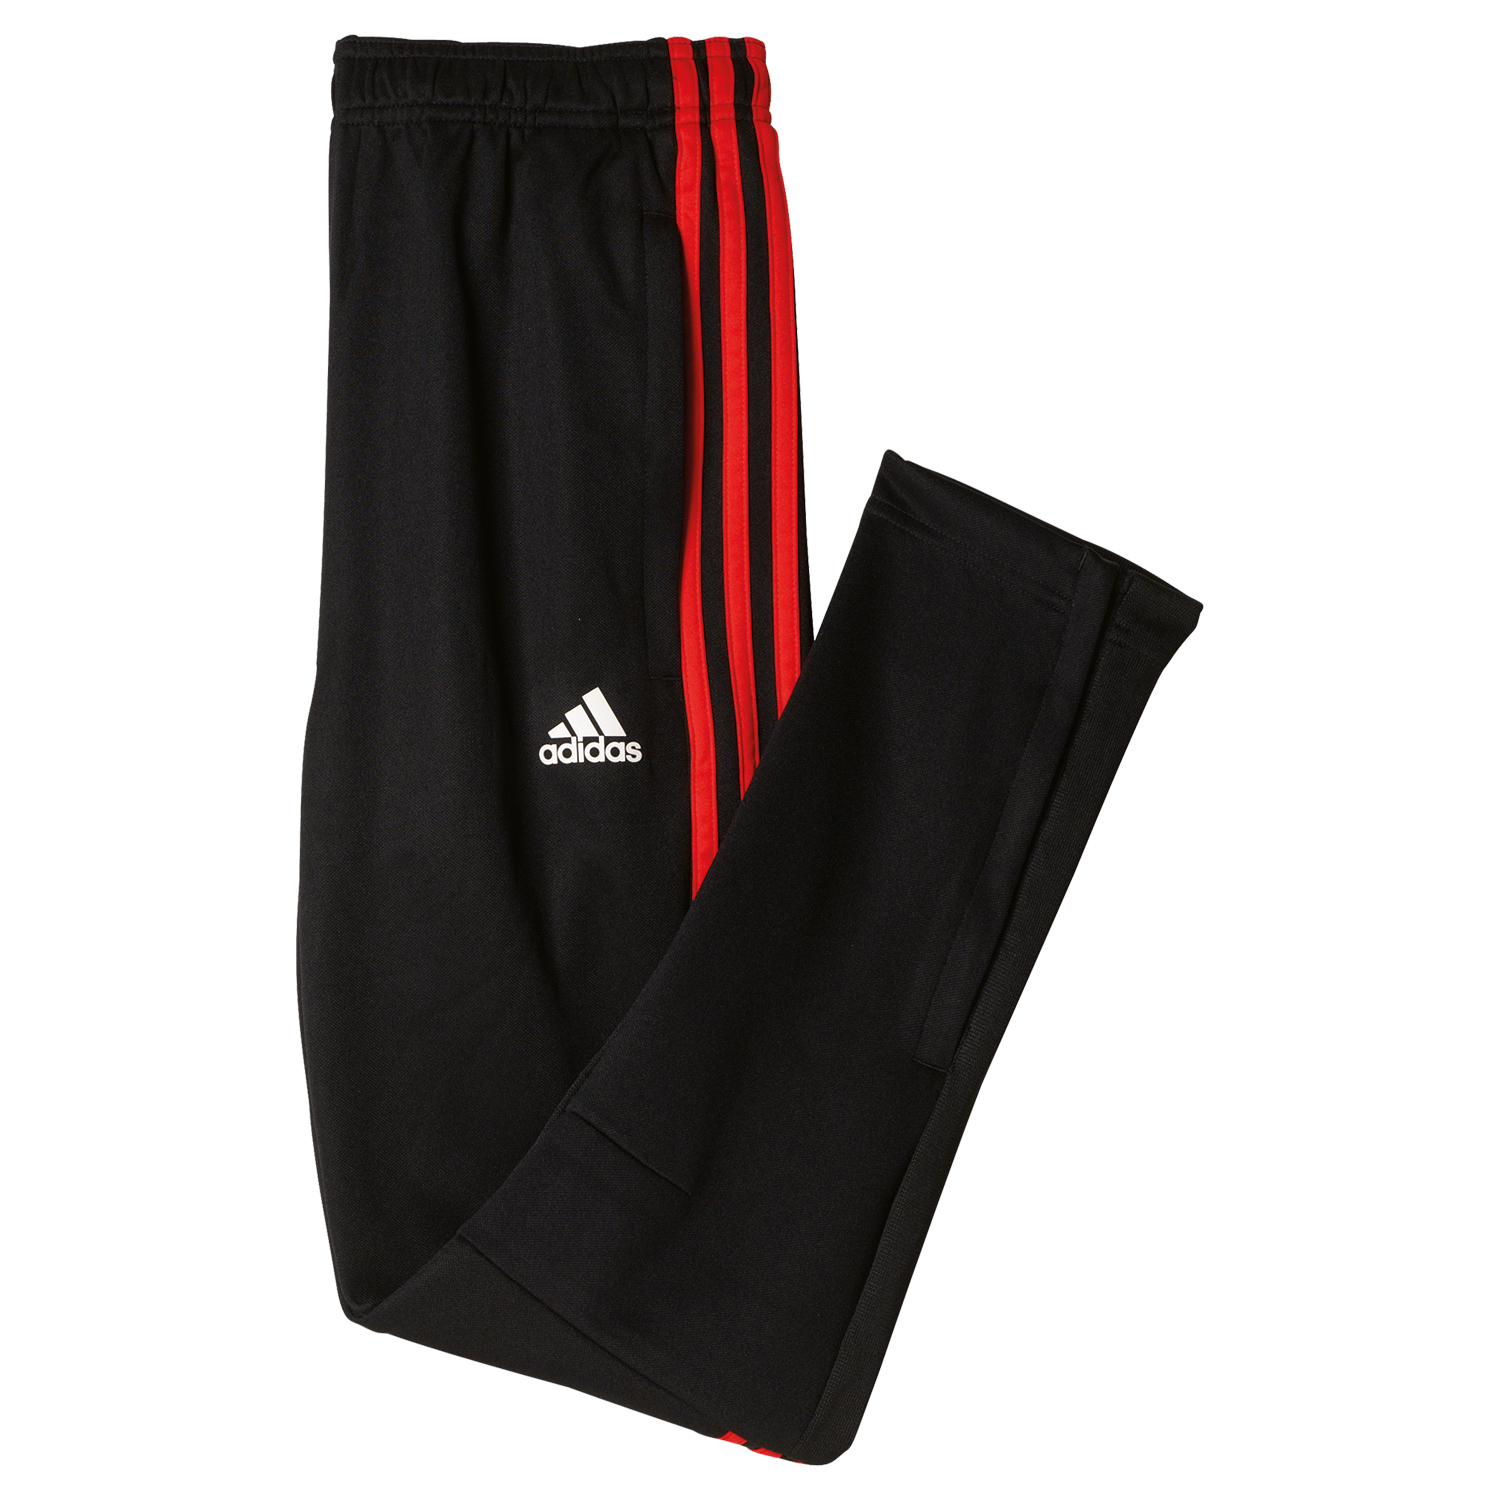 adidas tiro pant 3 stripes kinder trainingshose kinder. Black Bedroom Furniture Sets. Home Design Ideas